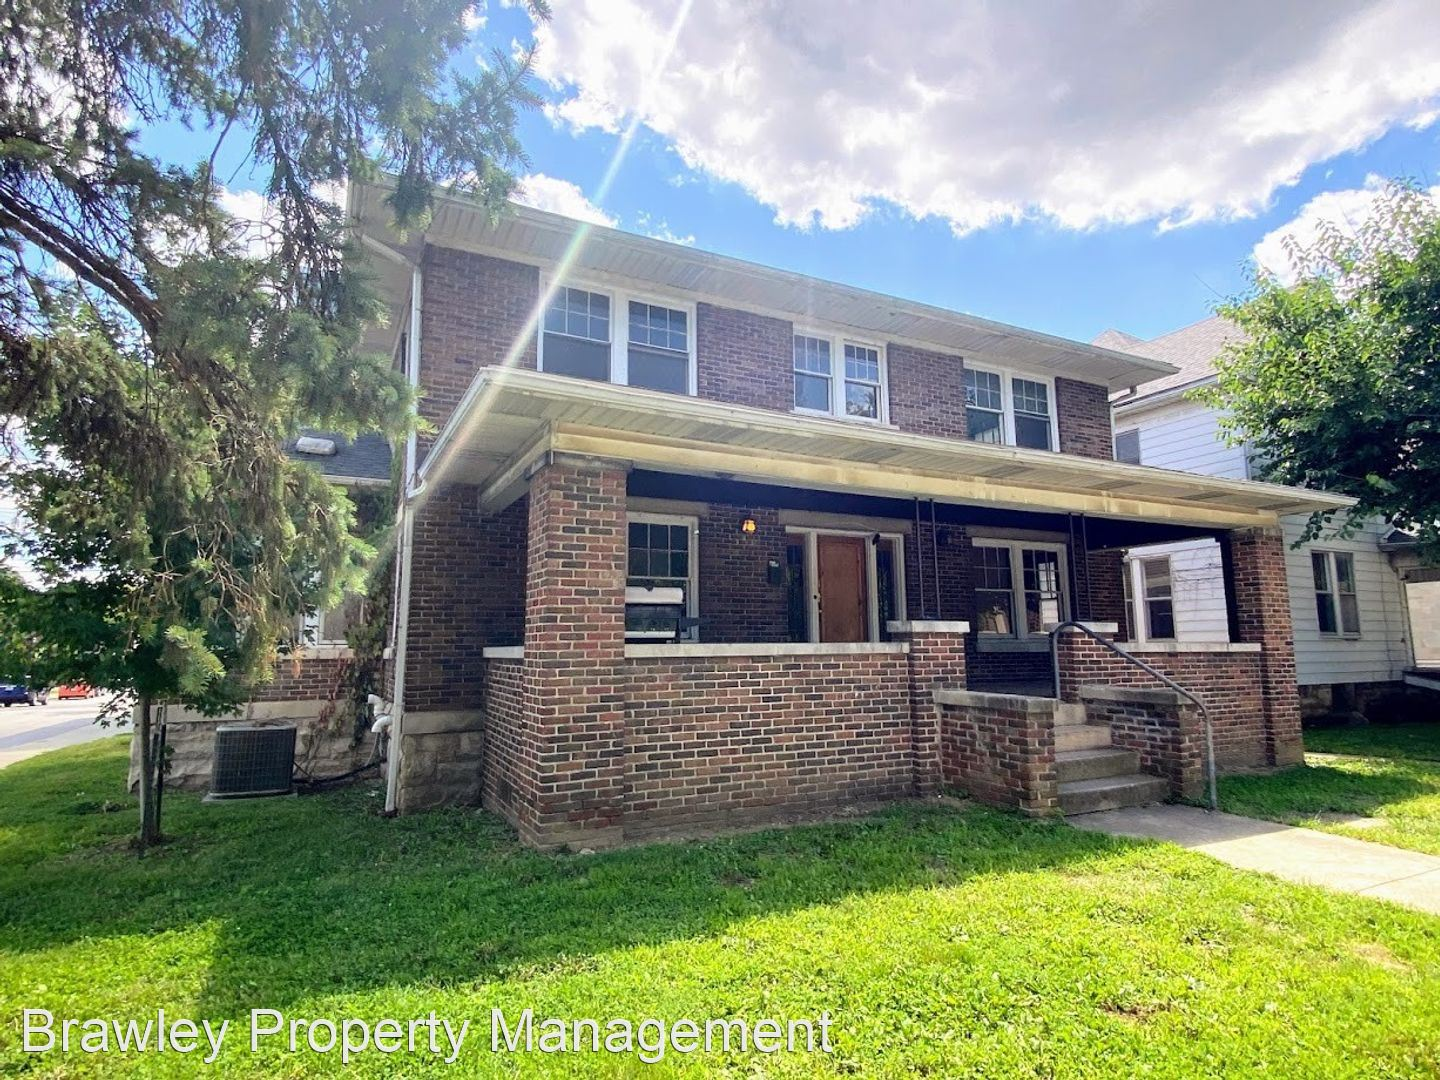 426 E. 6th St, Bloomington, IN - $5,500 USD/ month